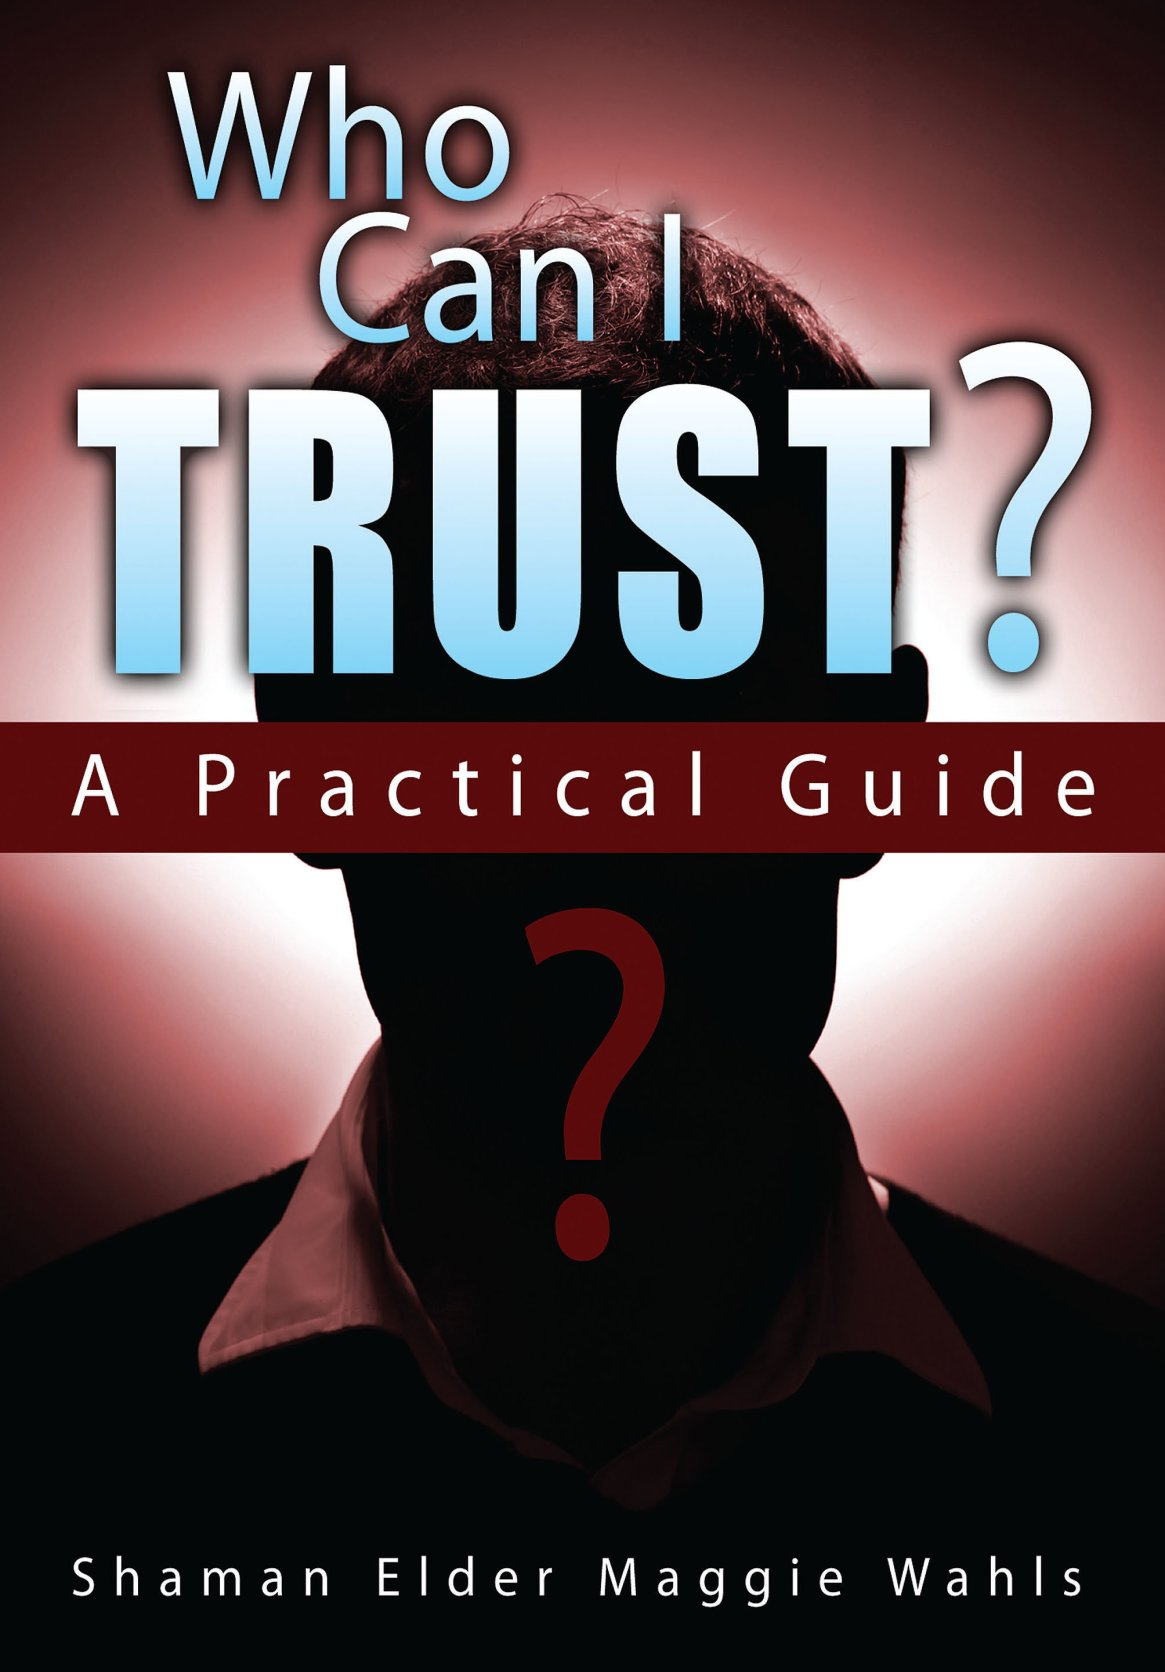 Who Can I Trust?: A Practical Guide 978-1-61599-134-1